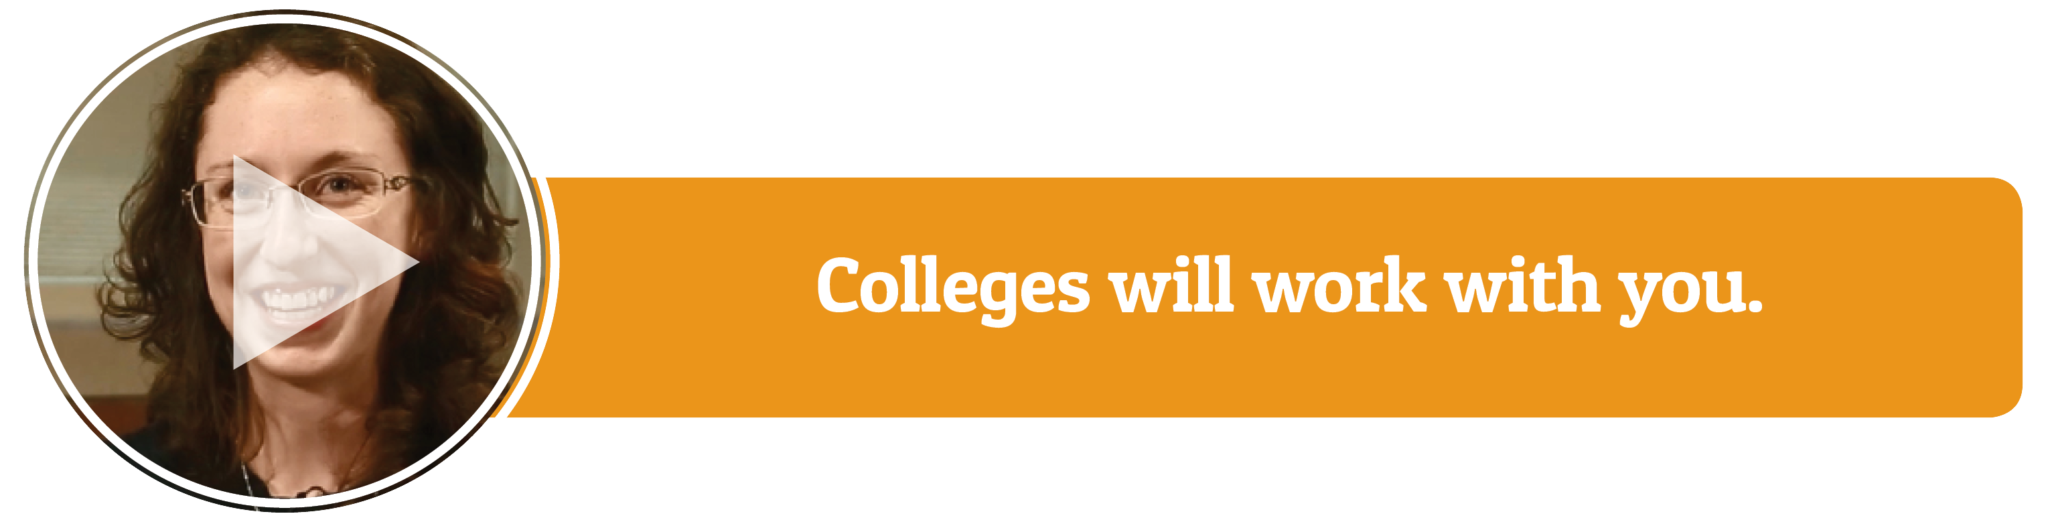 Video: Colleges will work with you